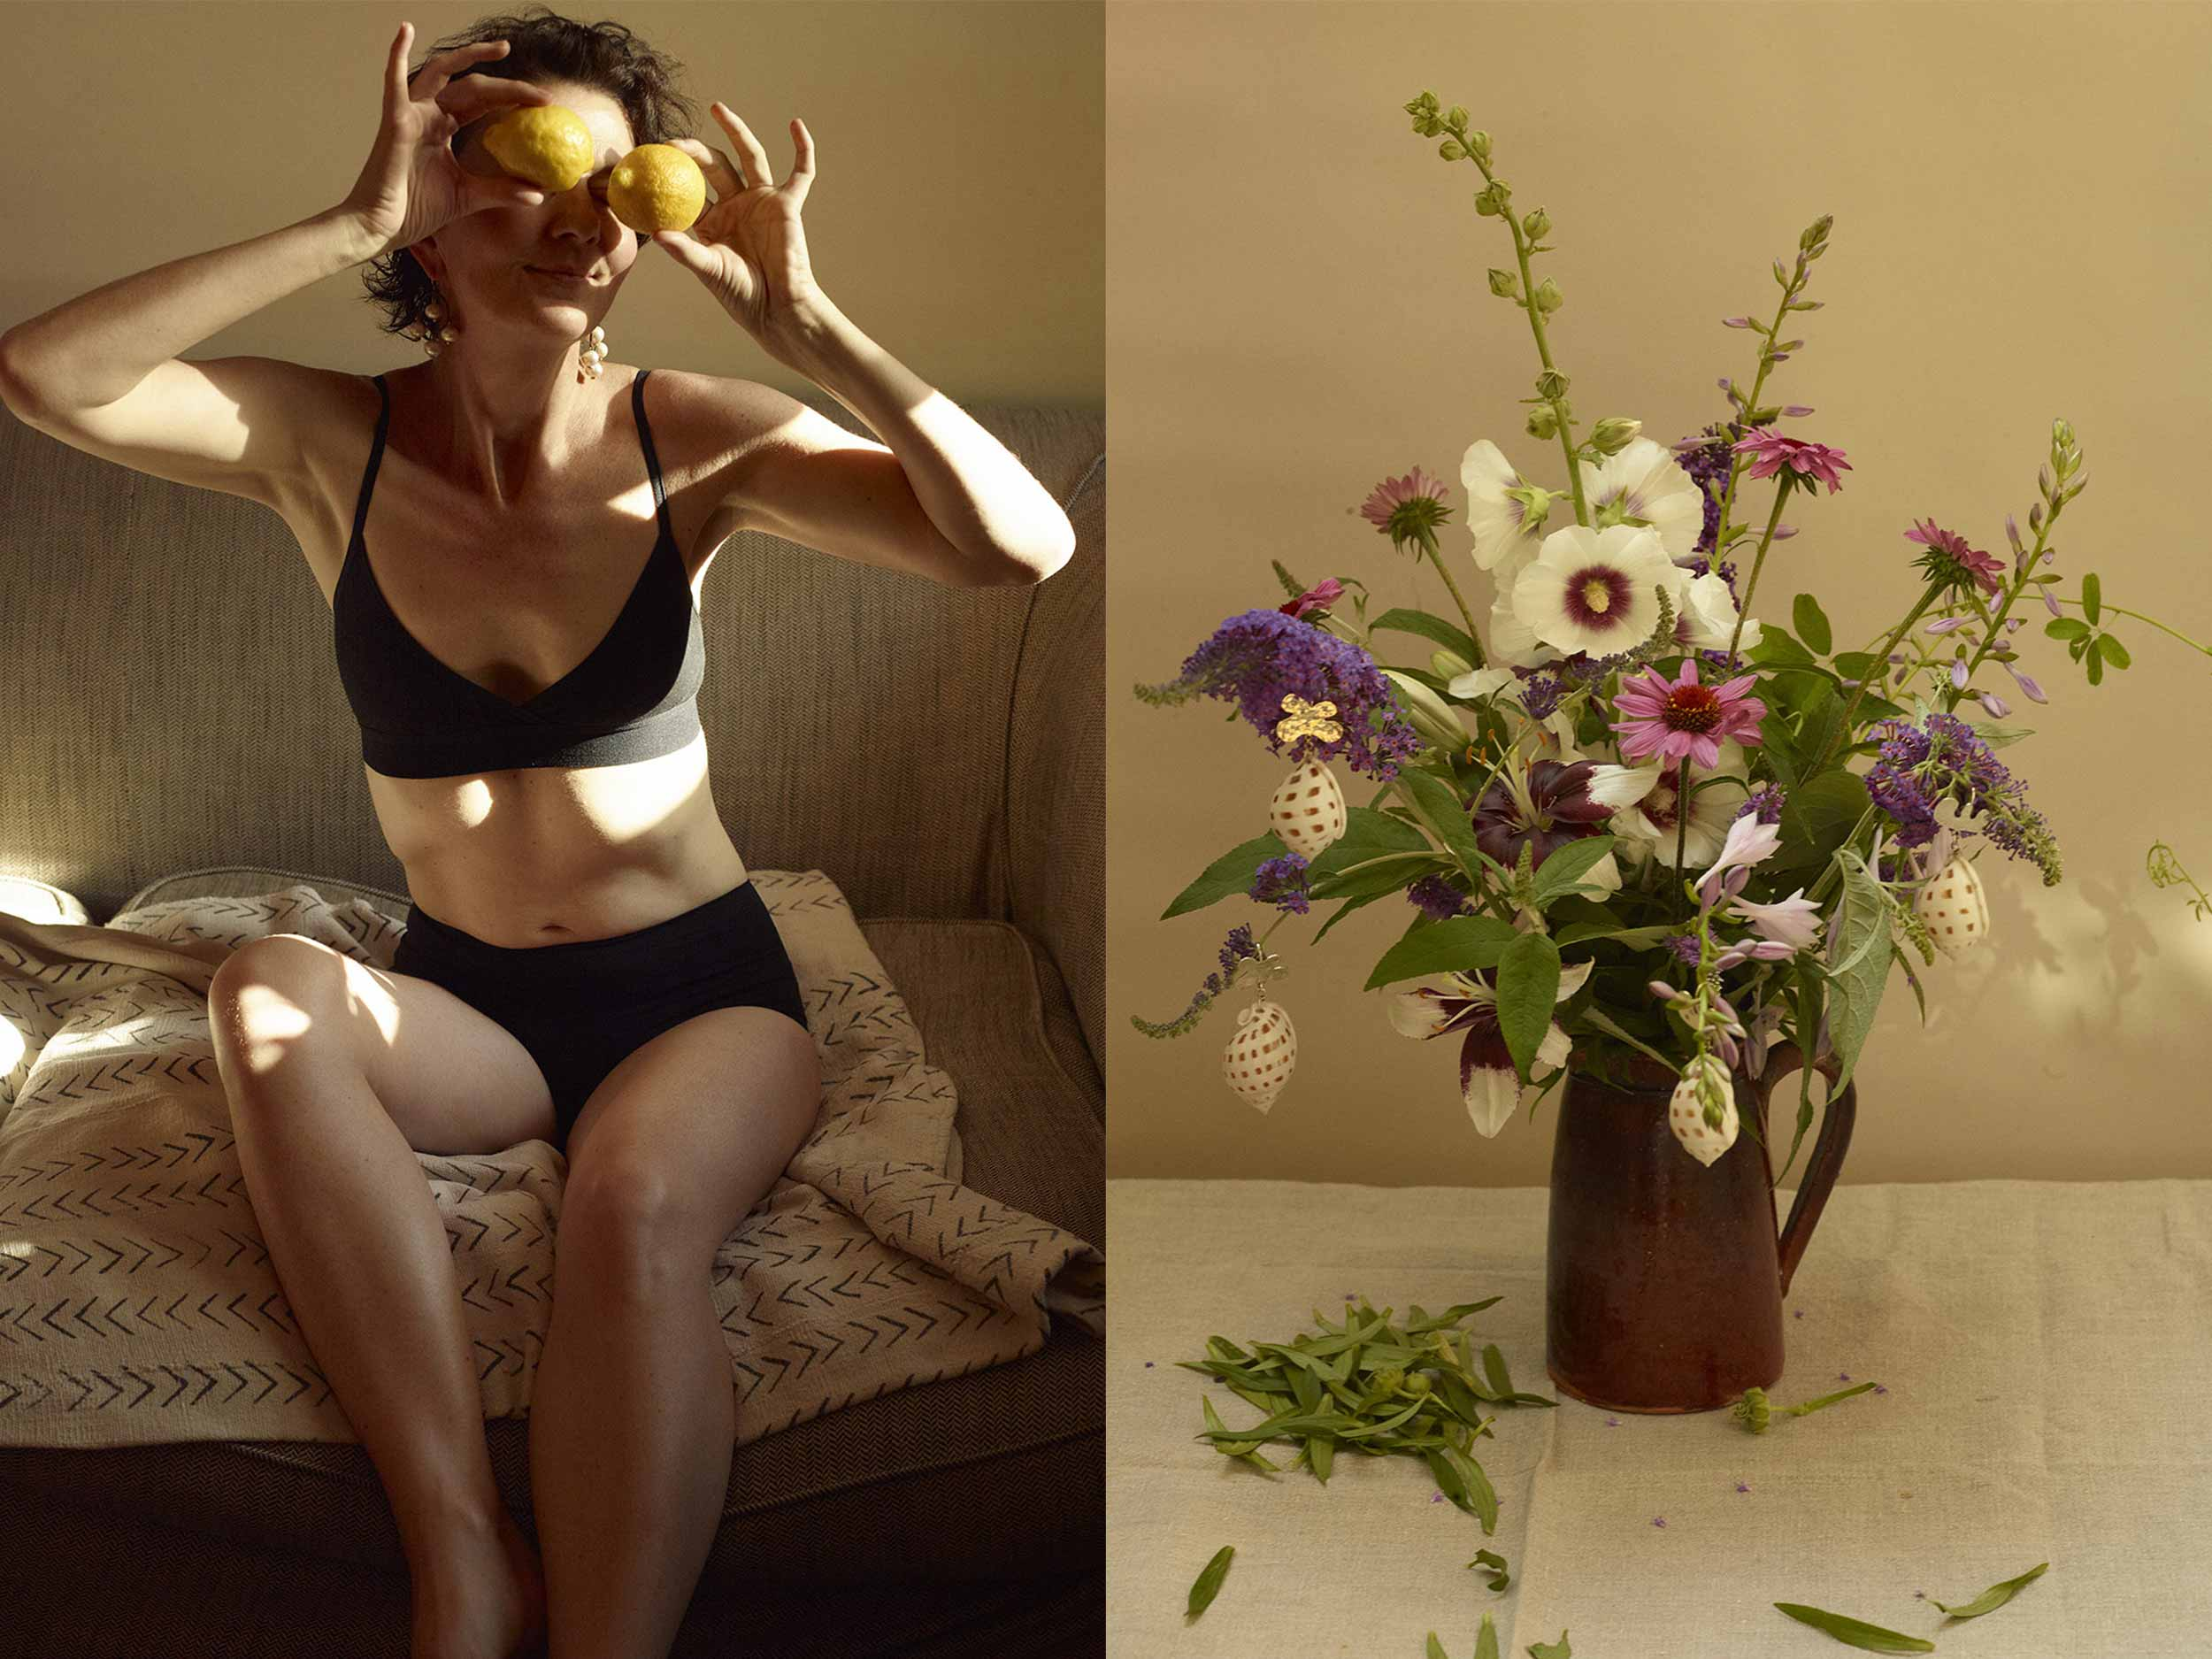 Catherine Servel captures her arty new jewelry collection on fruit, flowers, and family